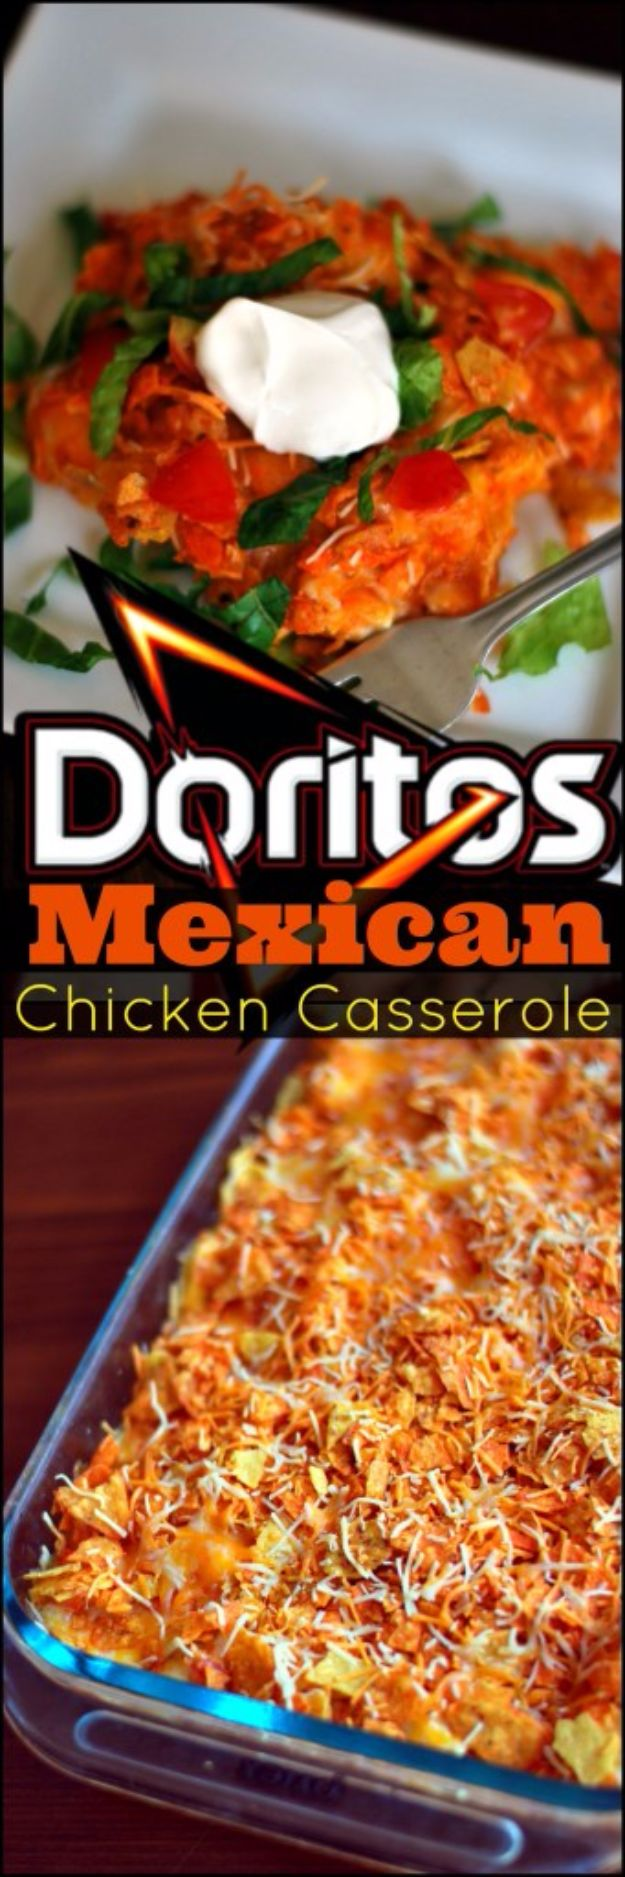 DIY Recipes Made With Doritos - Chicken And Doritos Casserole - Best Dorito Recipes for Casserole, Taco Salad, Chicken Dinners, Beef Casseroles, Nachos, Easy Cool Ranch Meals and Ideas for Dips, Snacks and Kids Recipe Tutorials - Quick Lunch Ideas and Recipes for Parties http://diyjoy.com/recipe-ideas-doritos